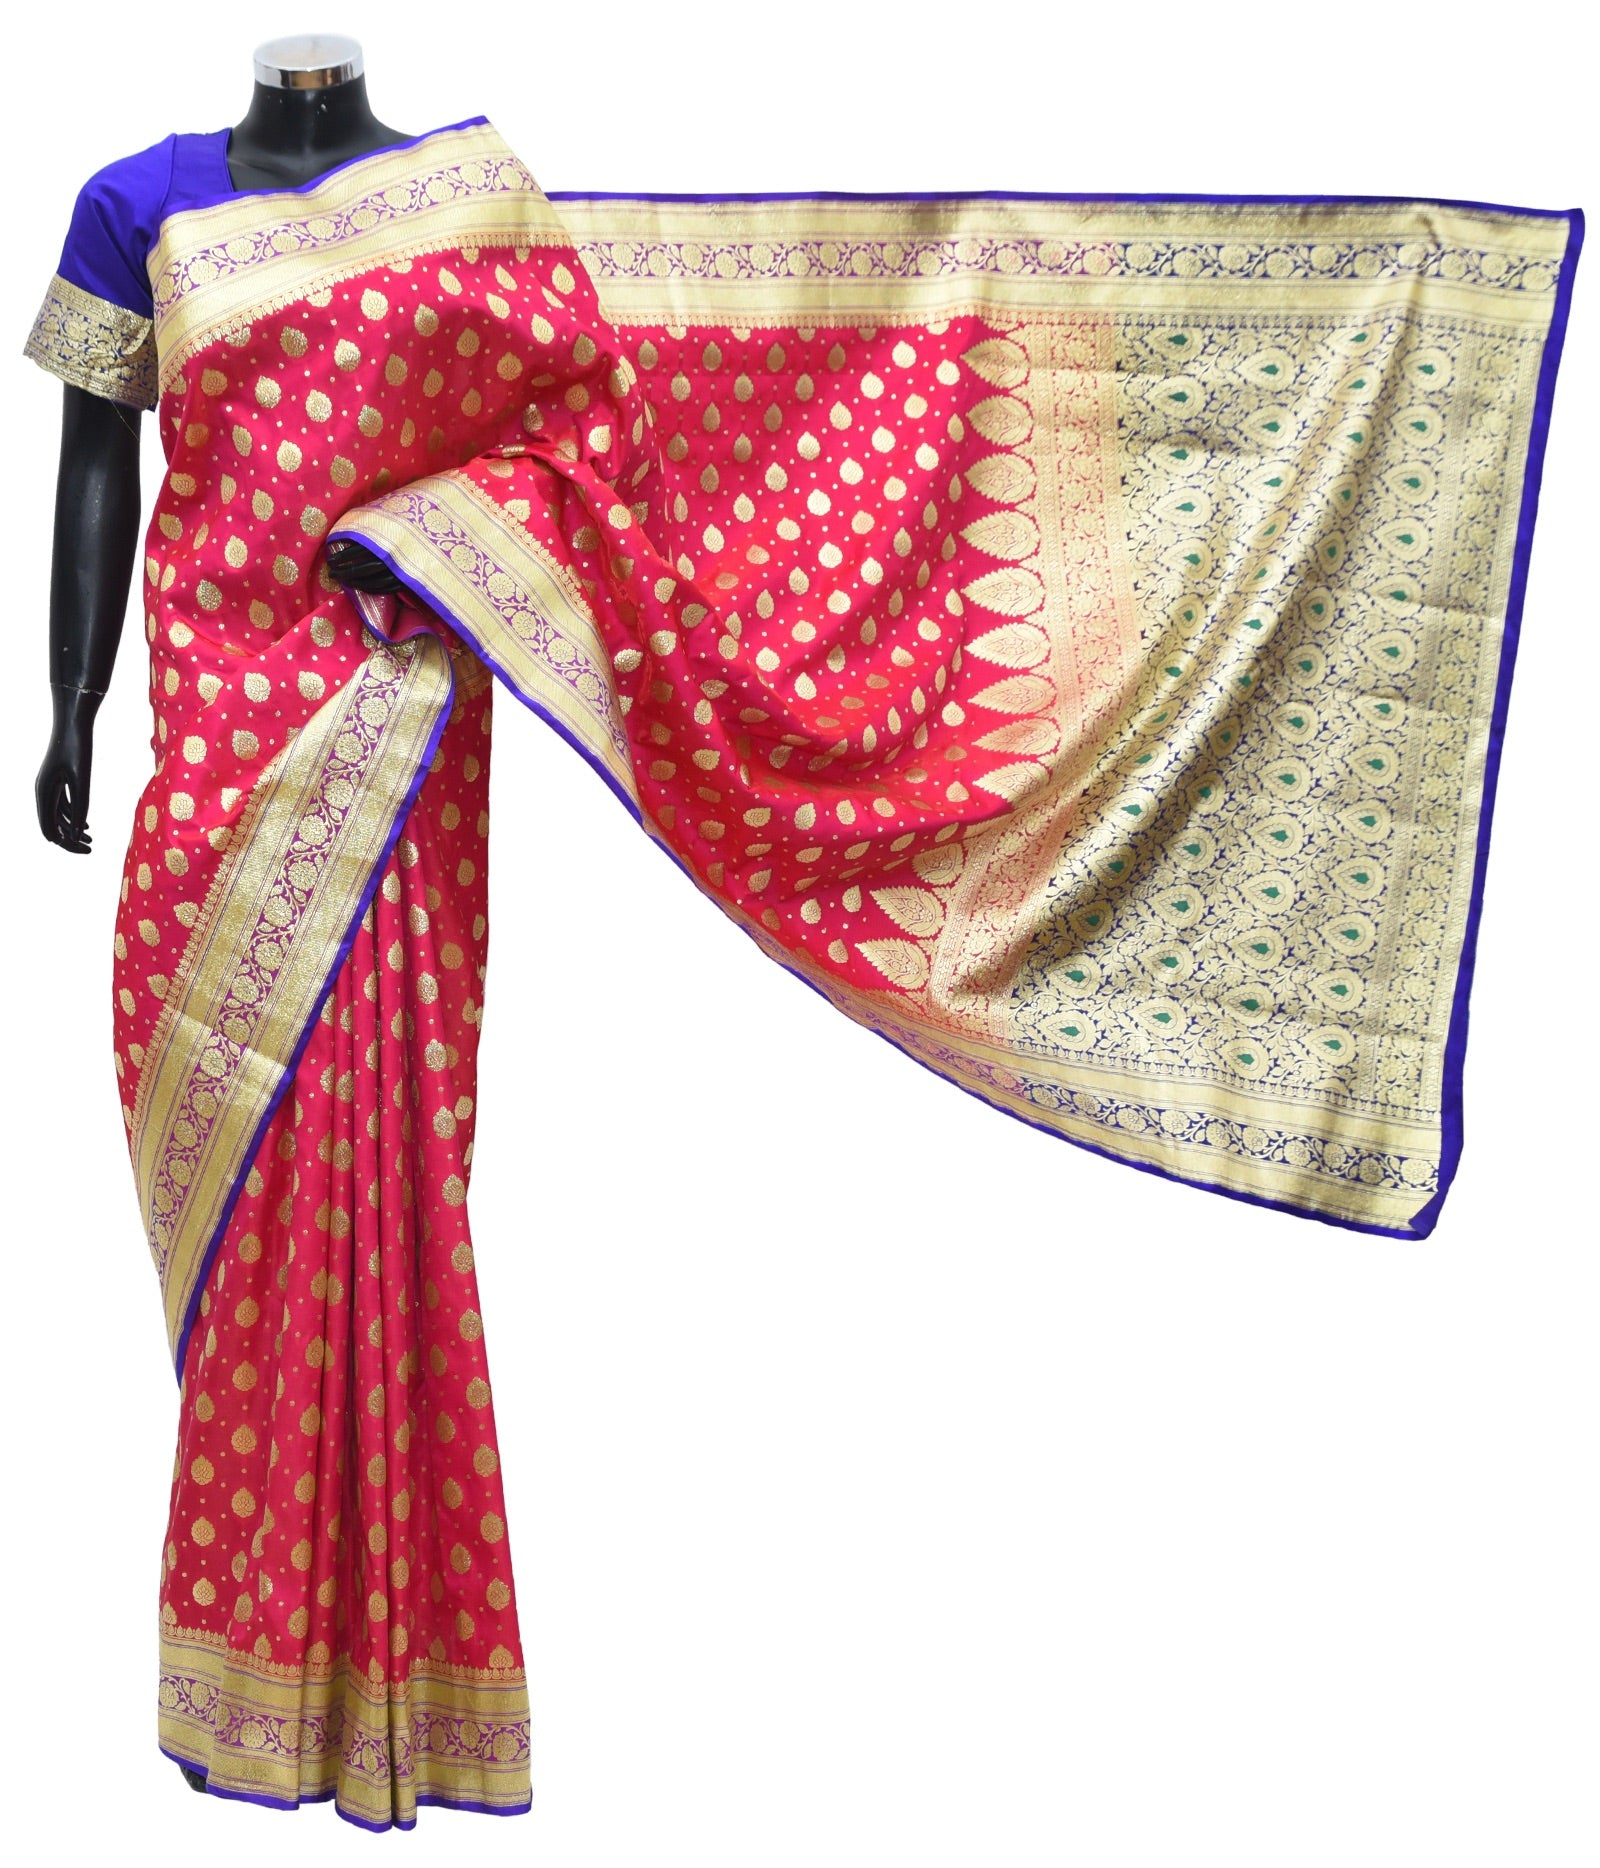 Banarsi silk saree Fdn1009-361